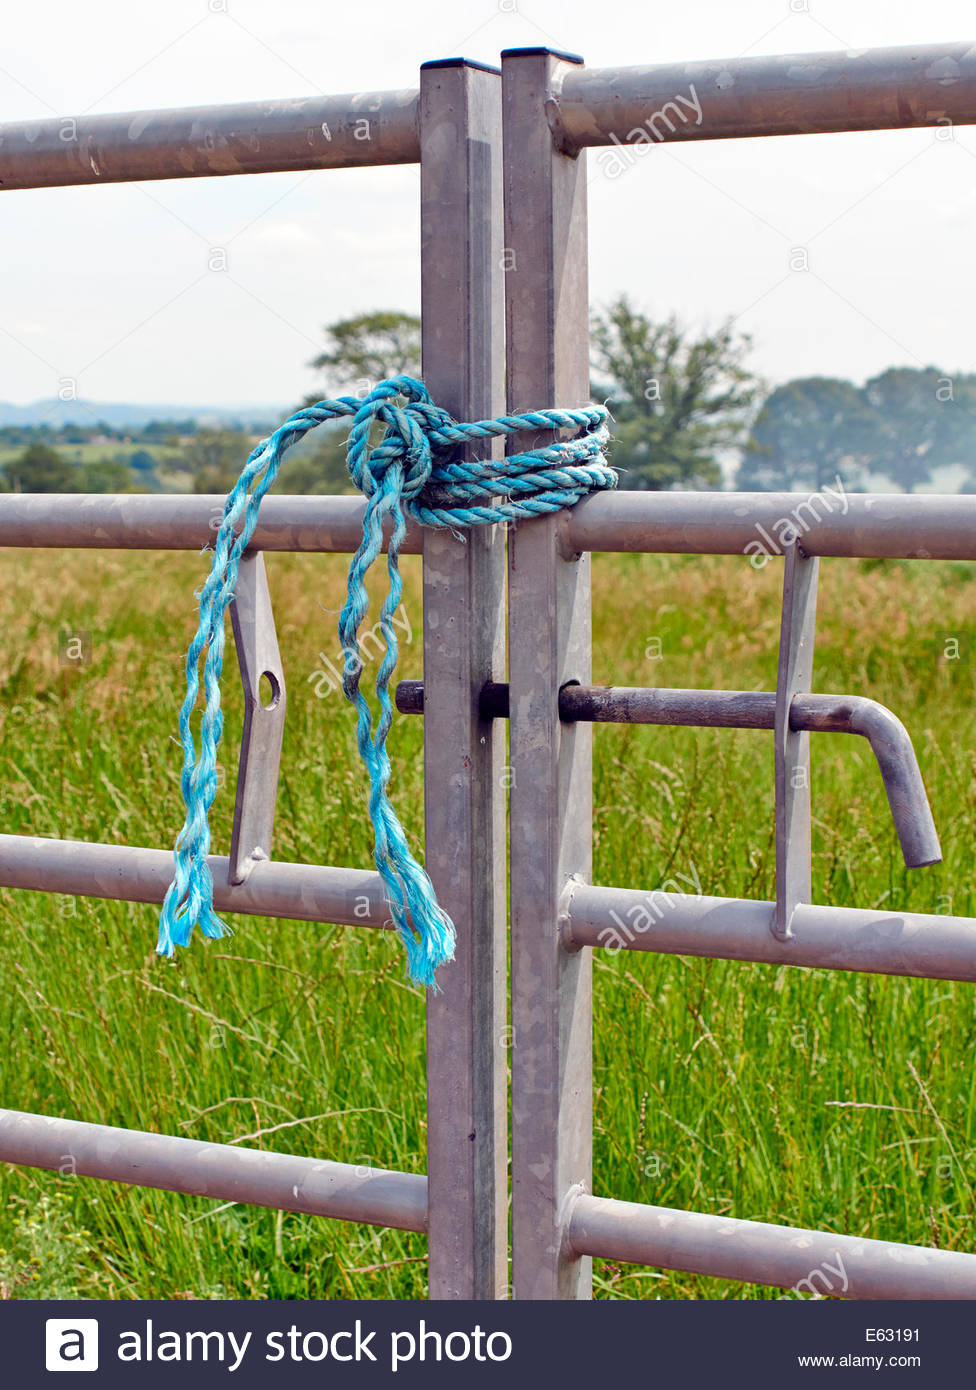 two closed metal galvanised farm gates tied up with blue nylon rope on farmland Stock Photo